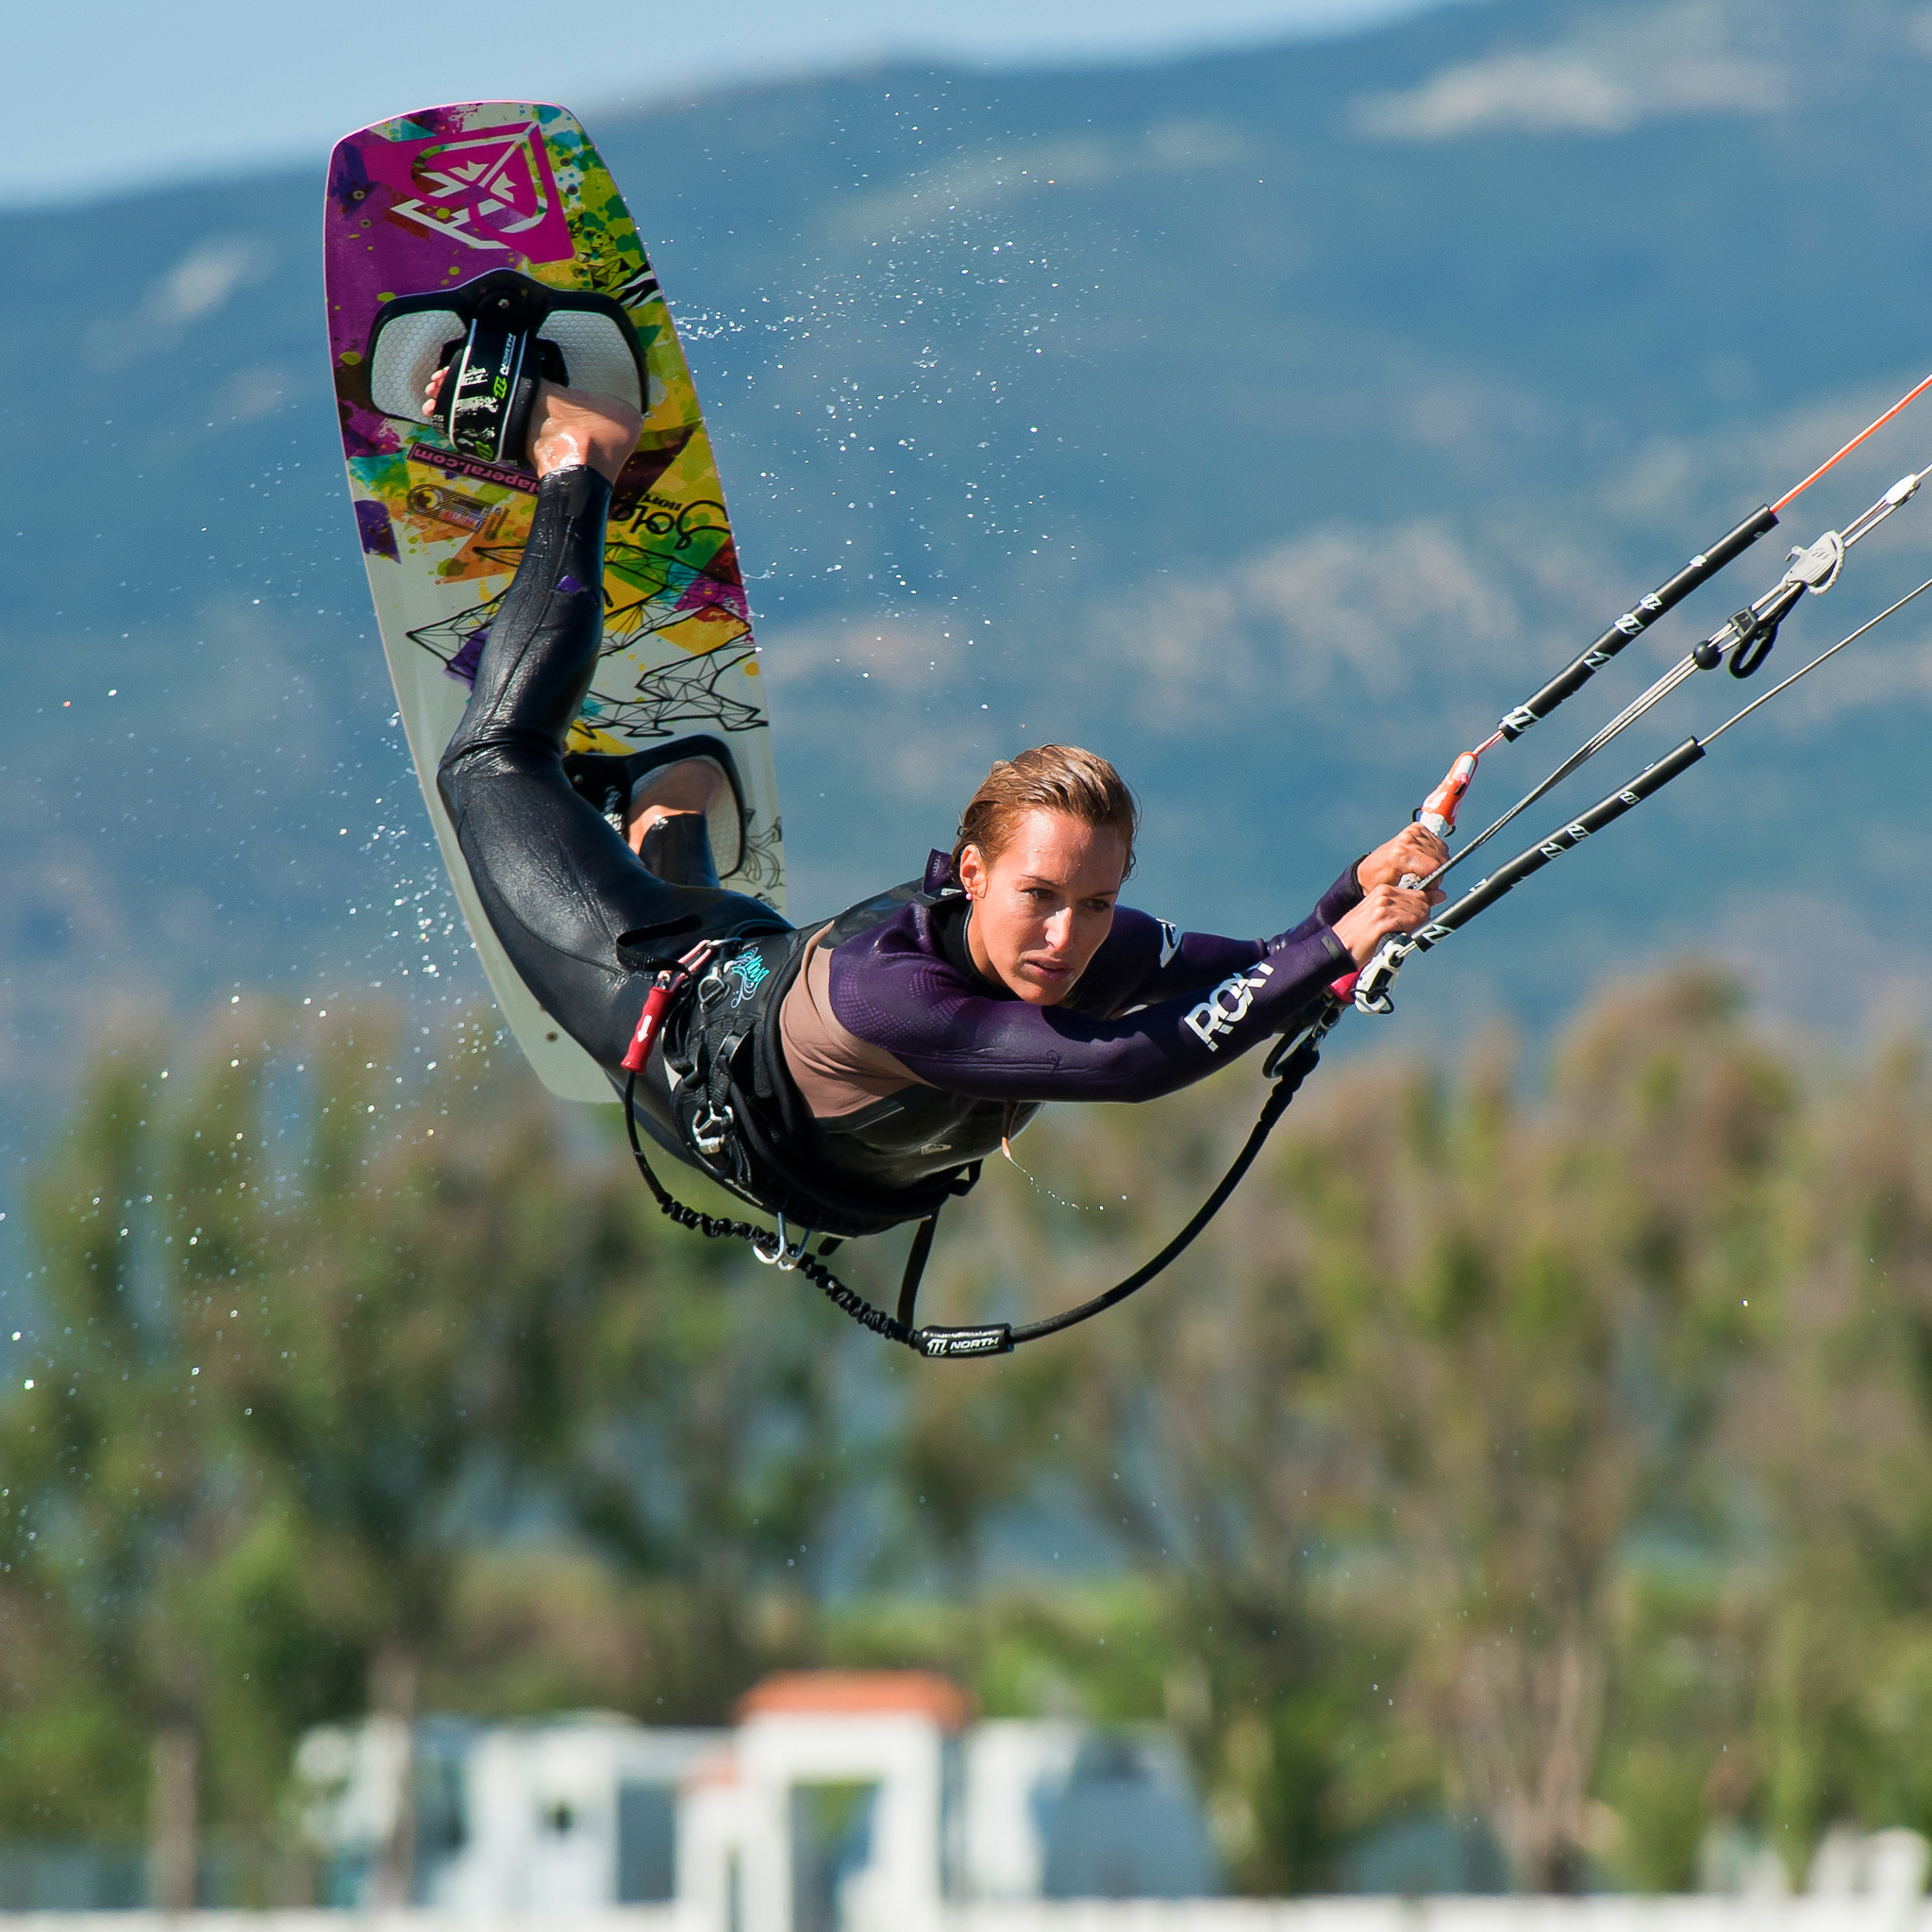 kitesurf wallpaper image - Angela Peral raily into town - in resolution: iPad 2 & 3 2048 X 2048